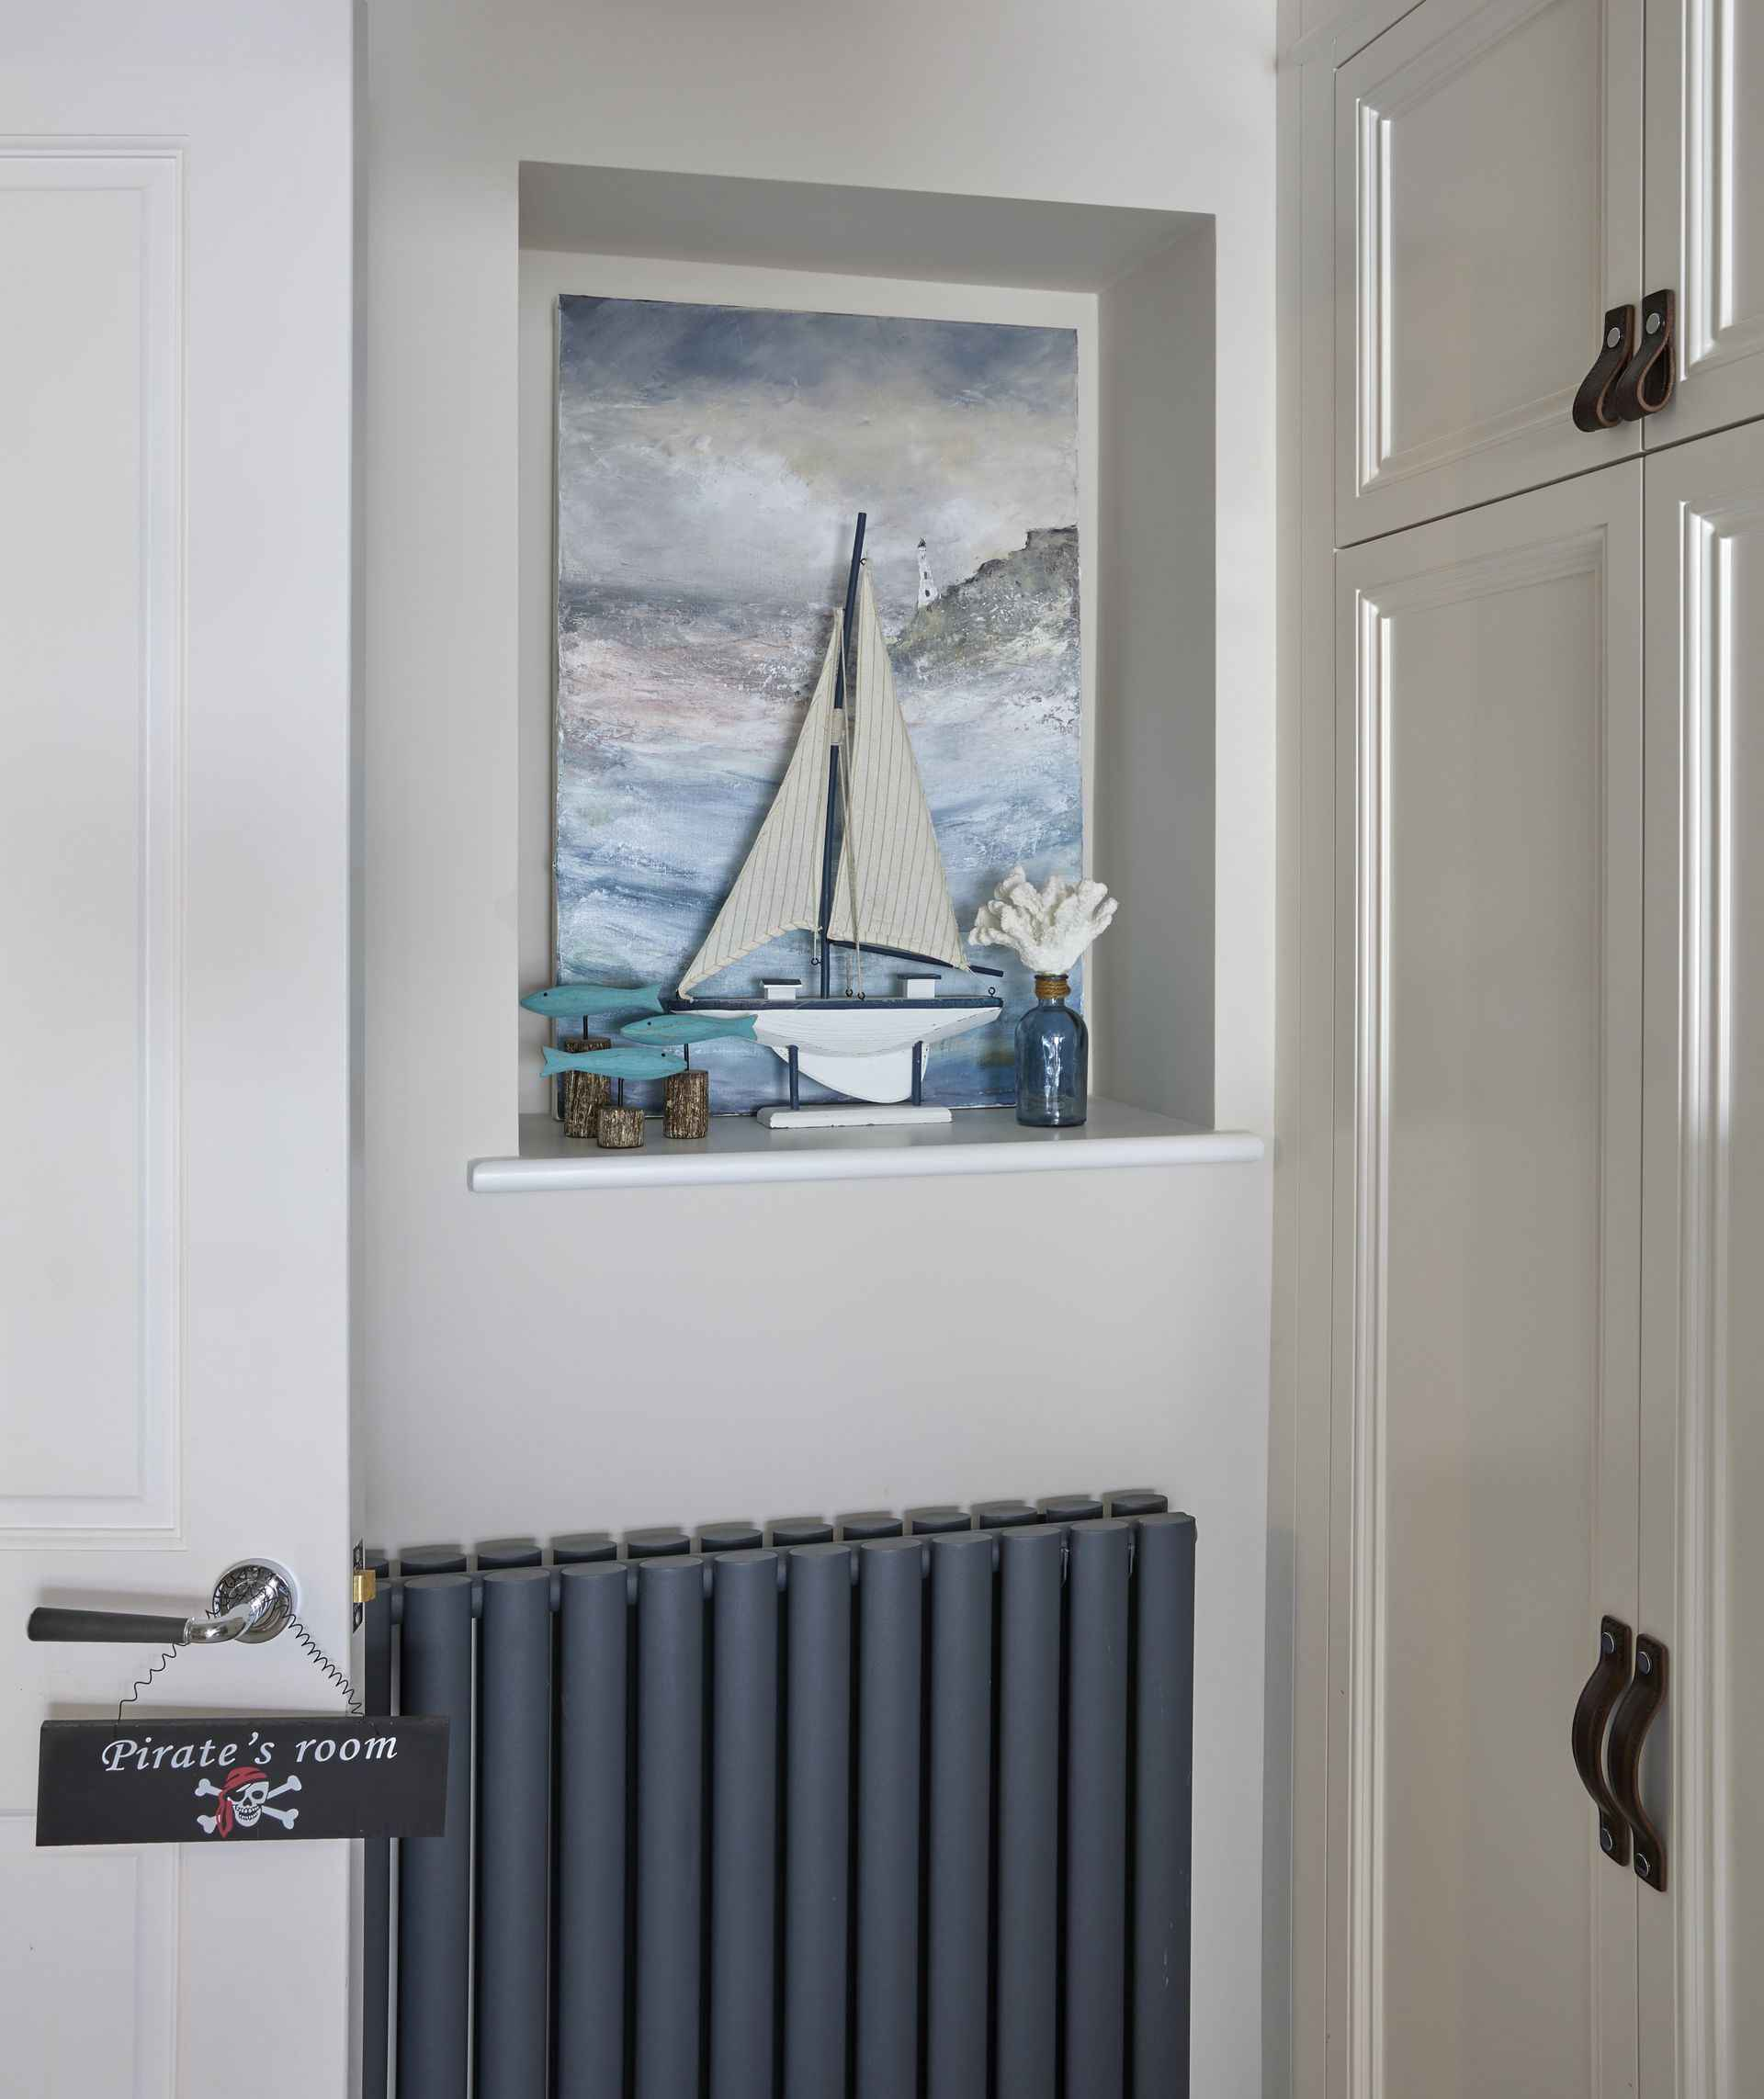 Sea and boat picture on the wall of the pirate room of mountain ash house